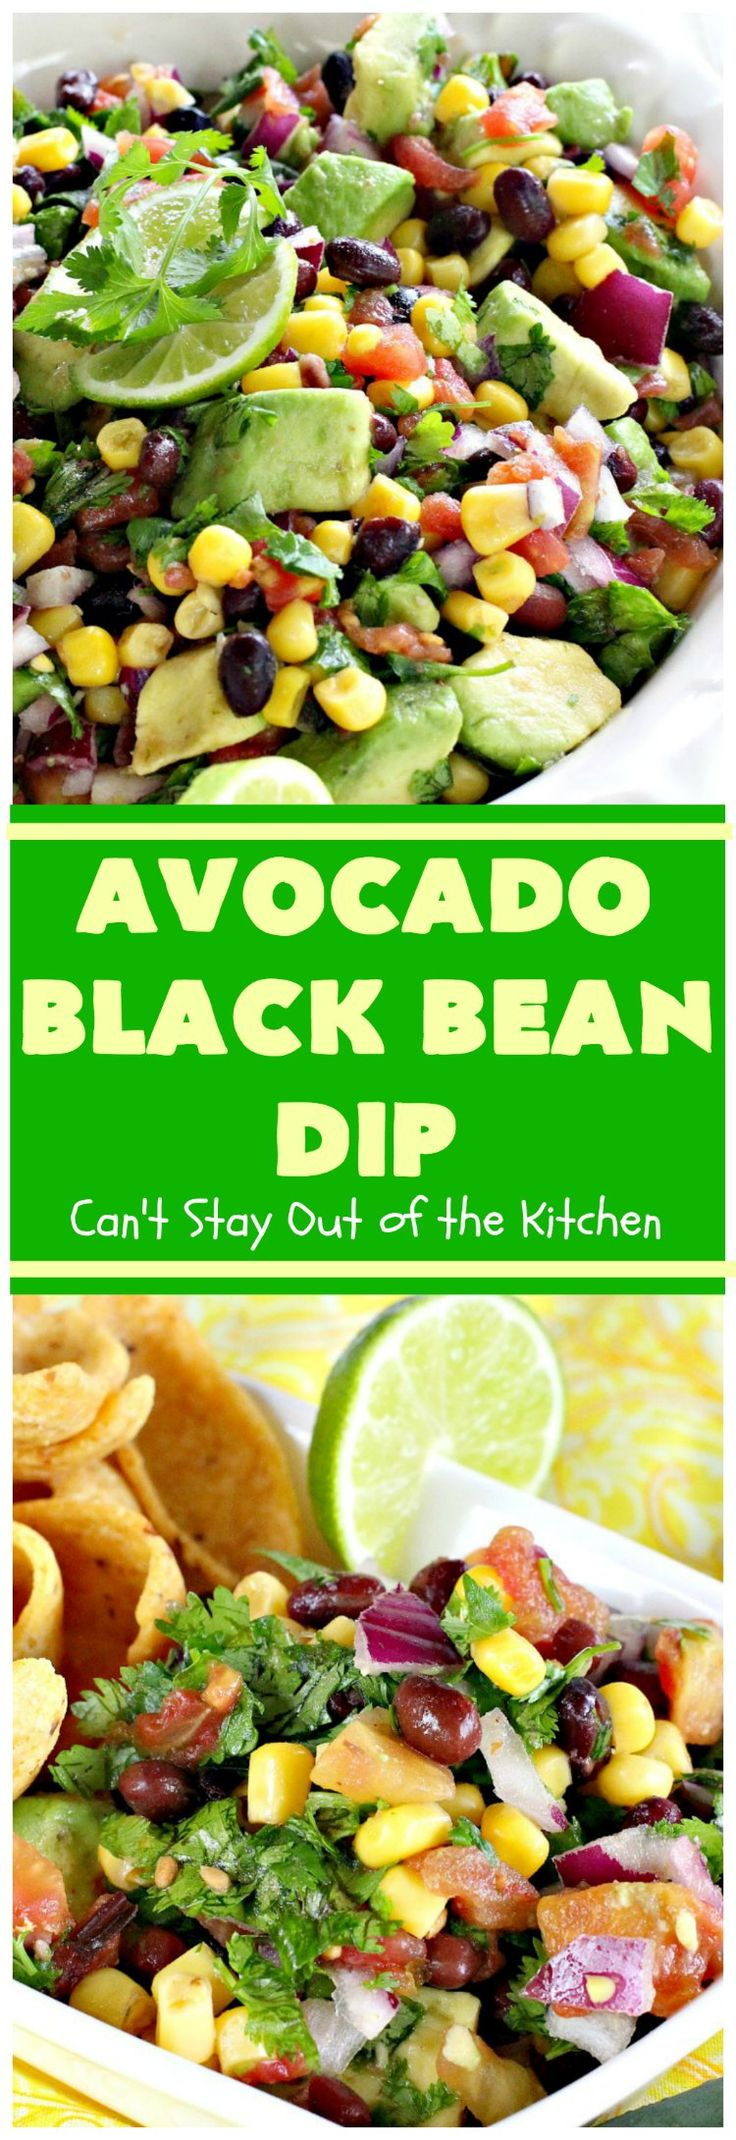 Avocado Black Bean Dip